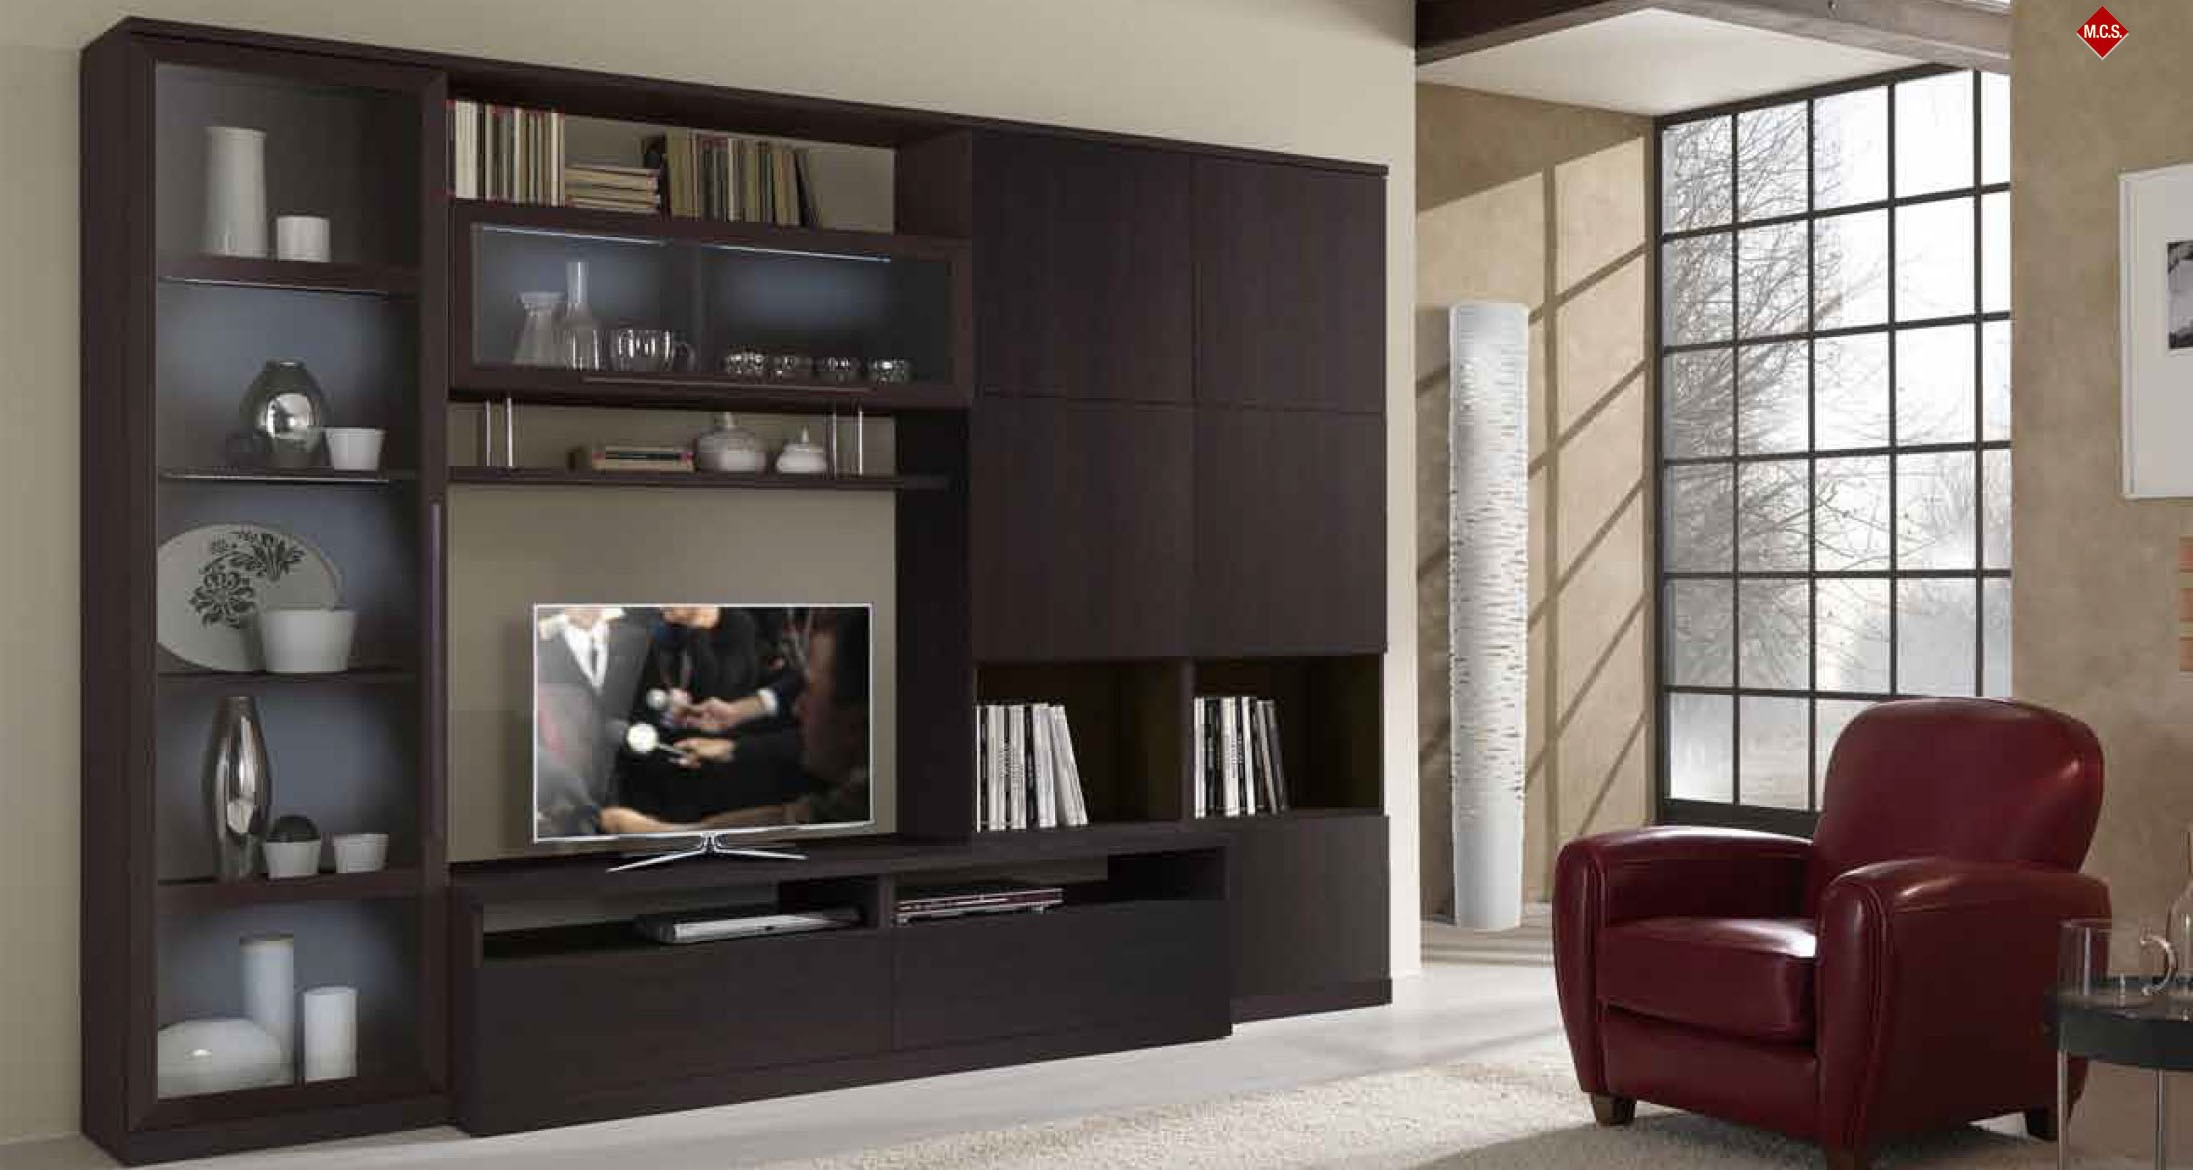 Tv Cabinet Designs 20 modern tv unit design ideas for bedroom & living room with pictures